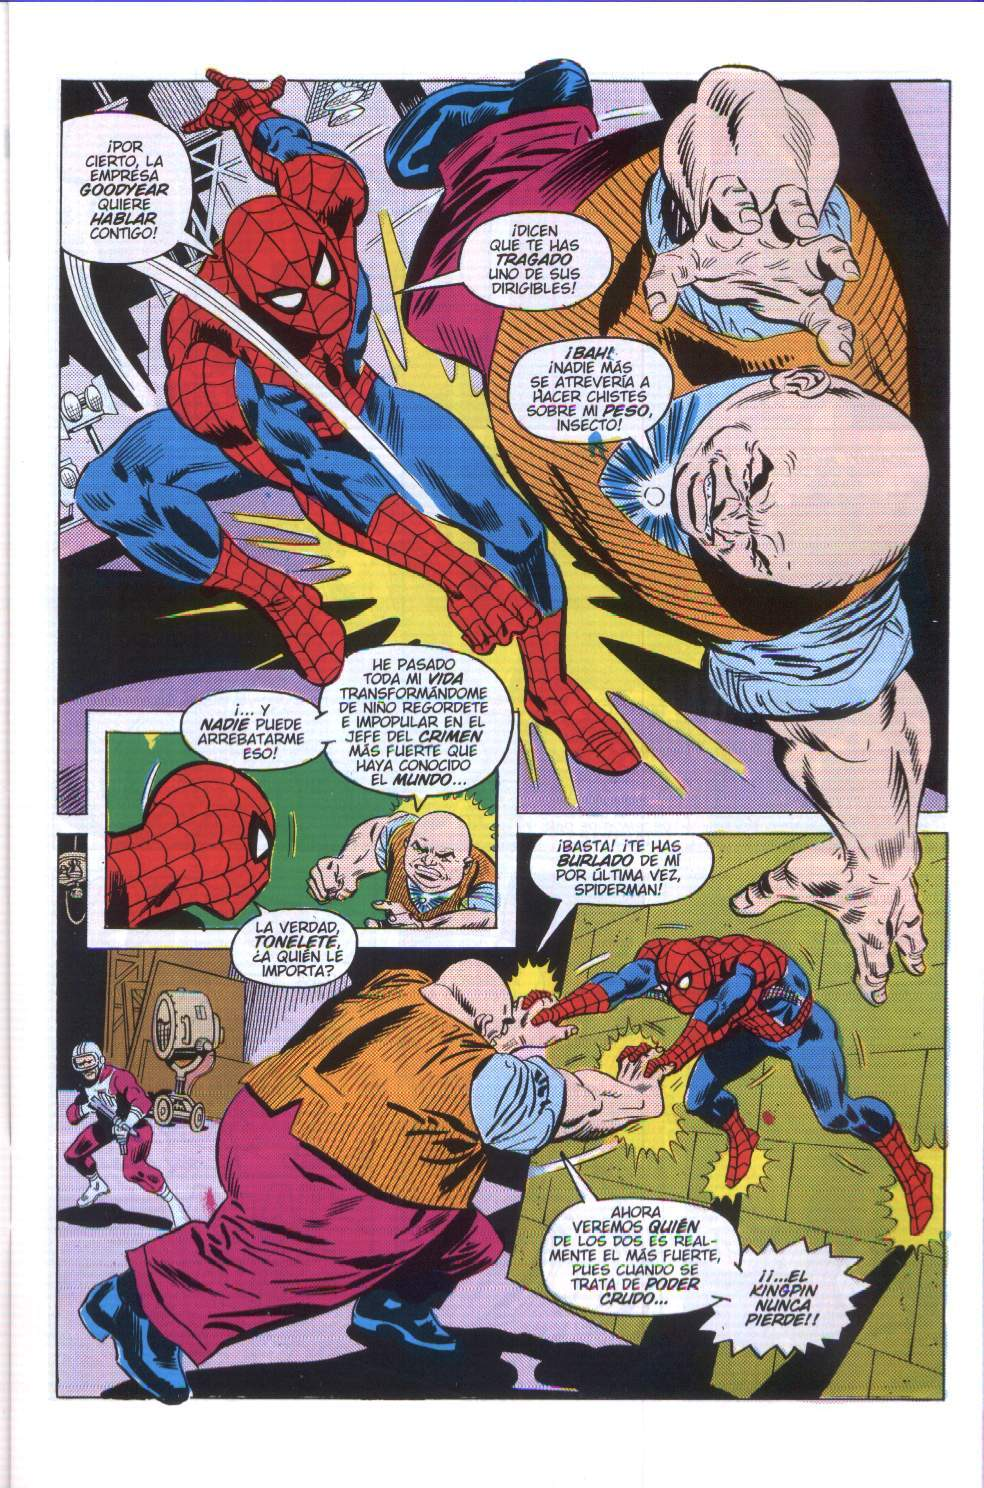 The Amazing Spider-Man #163